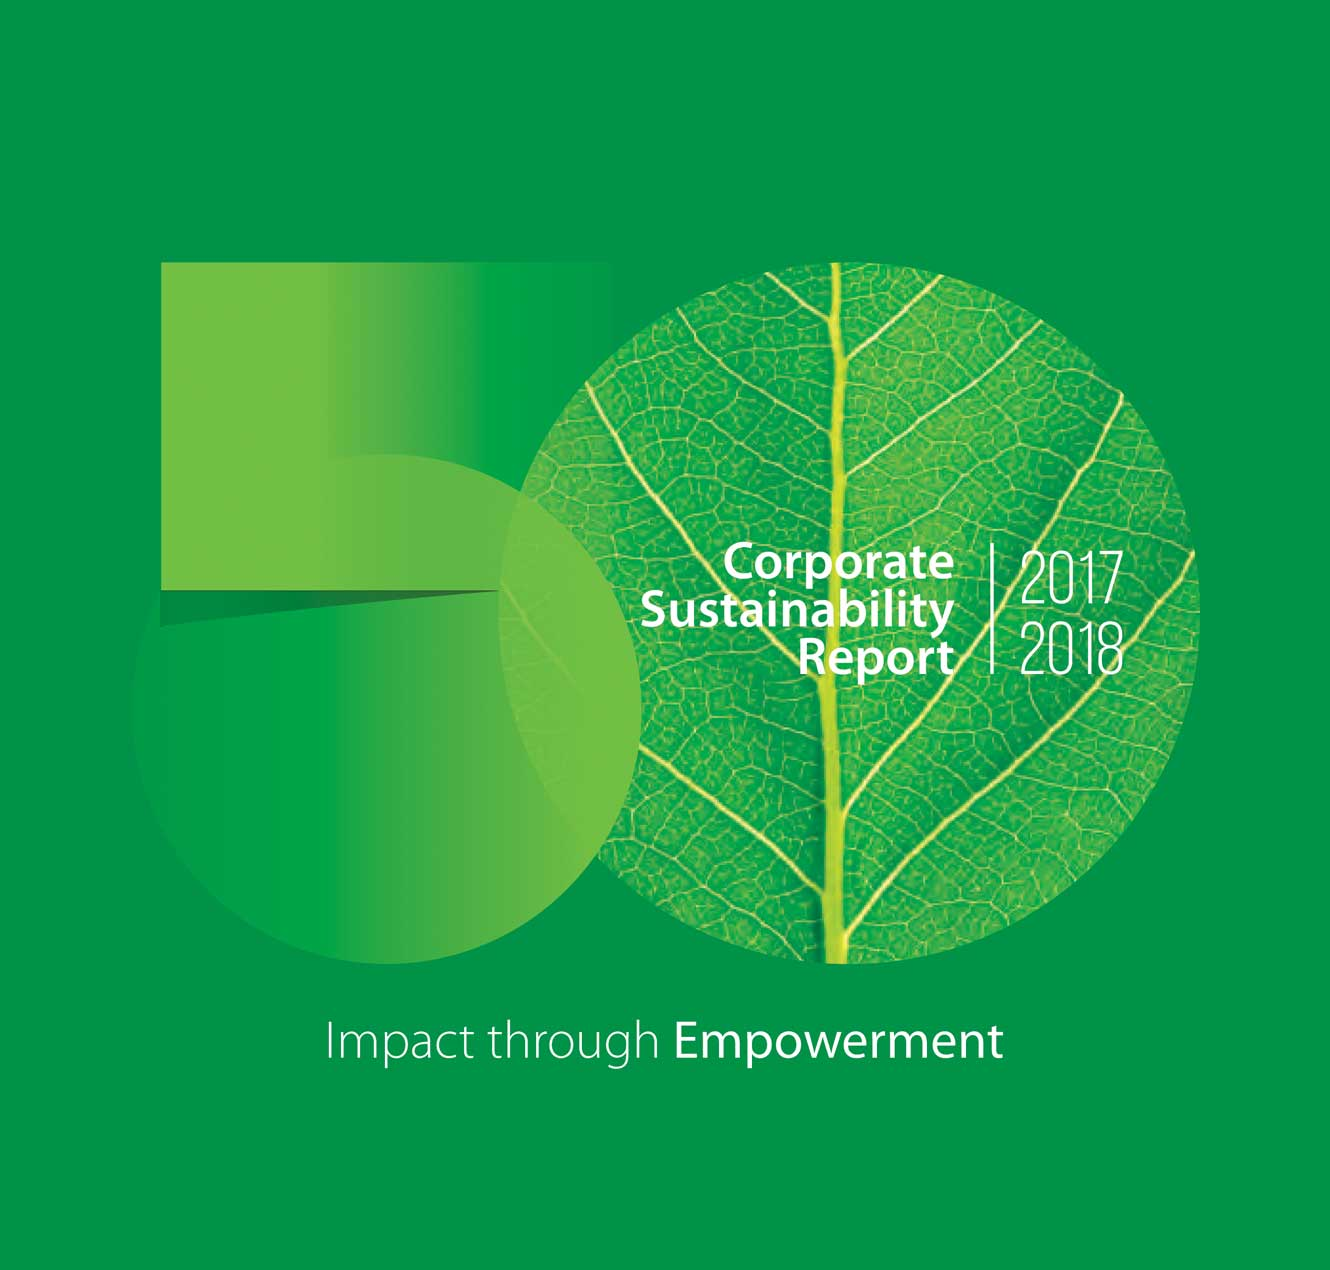 CORPORATE SUSTAINABILITY REPORT 2017-2018